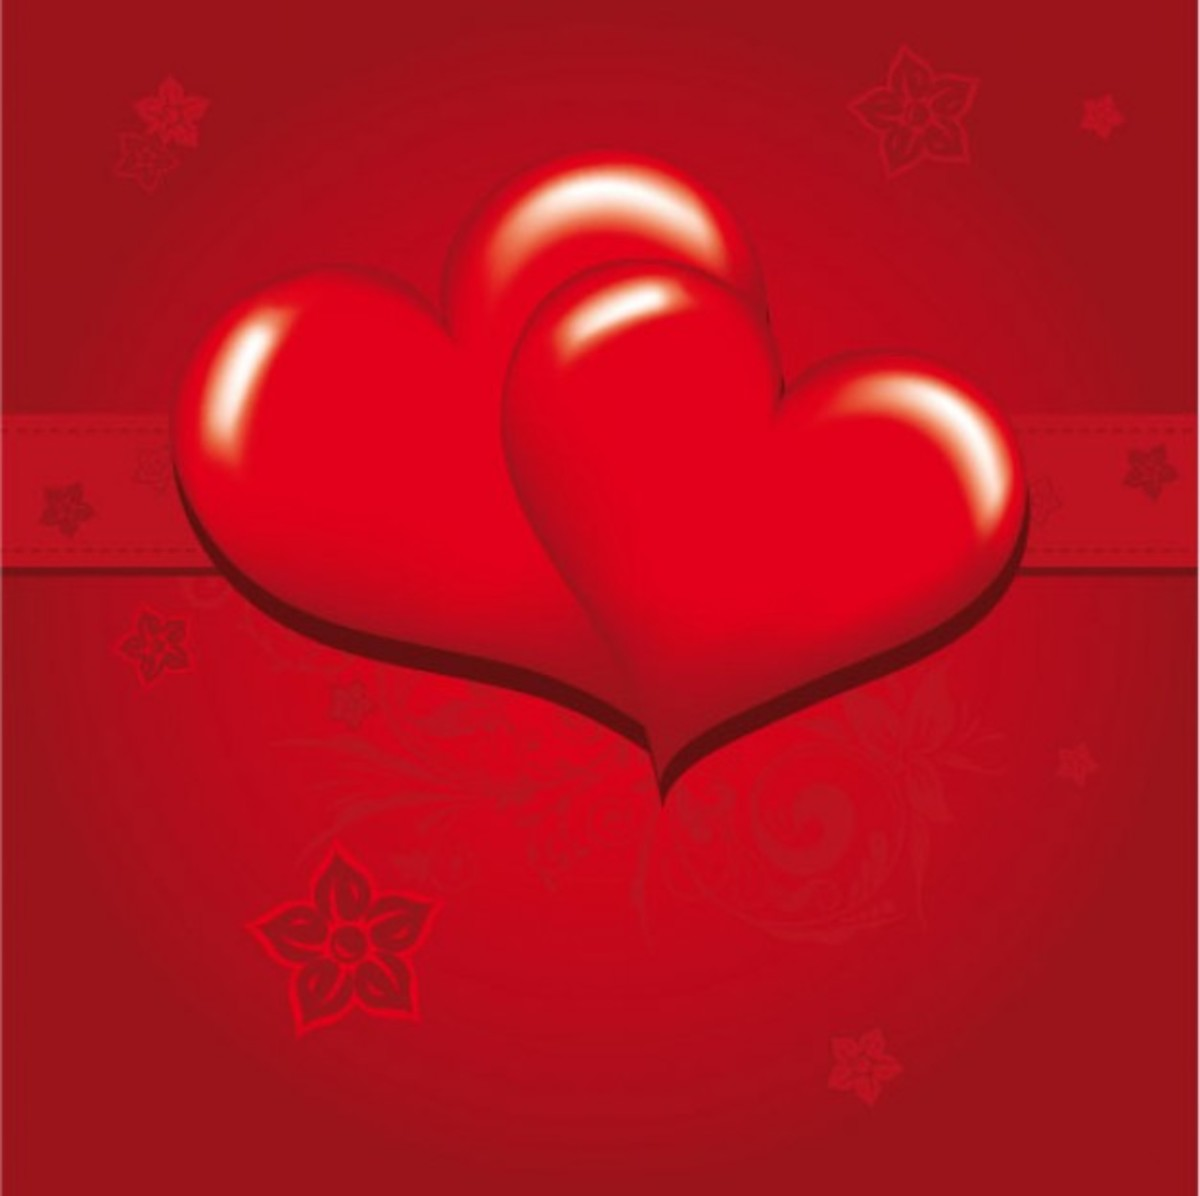 Double Red Hearts Picture